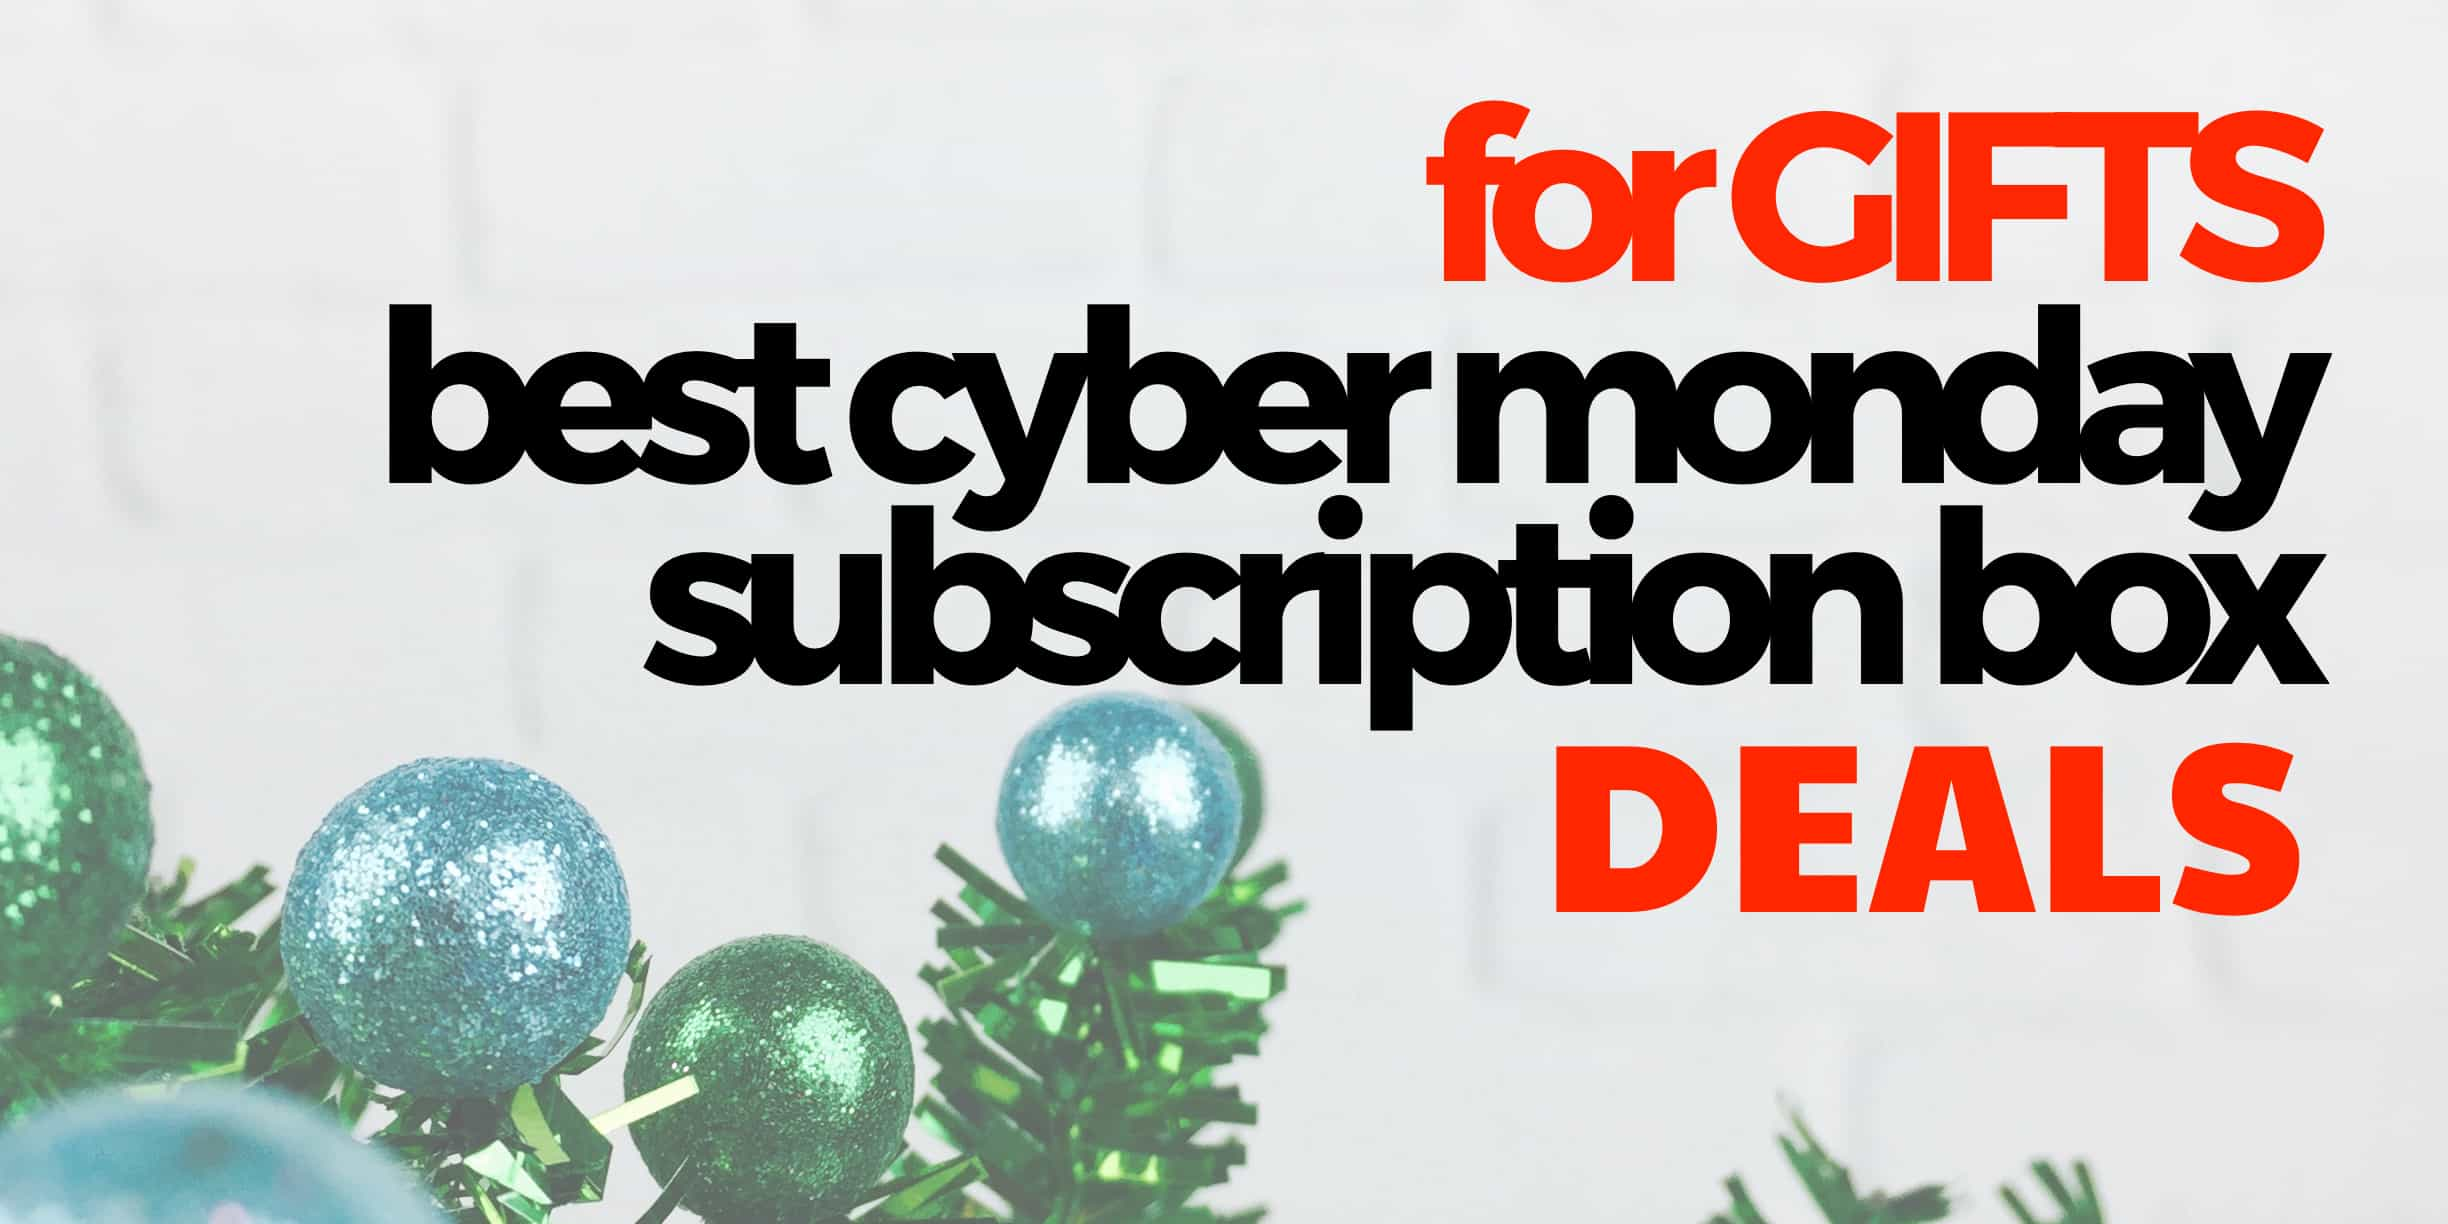 Best Cyber Monday Deals: 11 Subscription Boxes For Everyone On Your List!